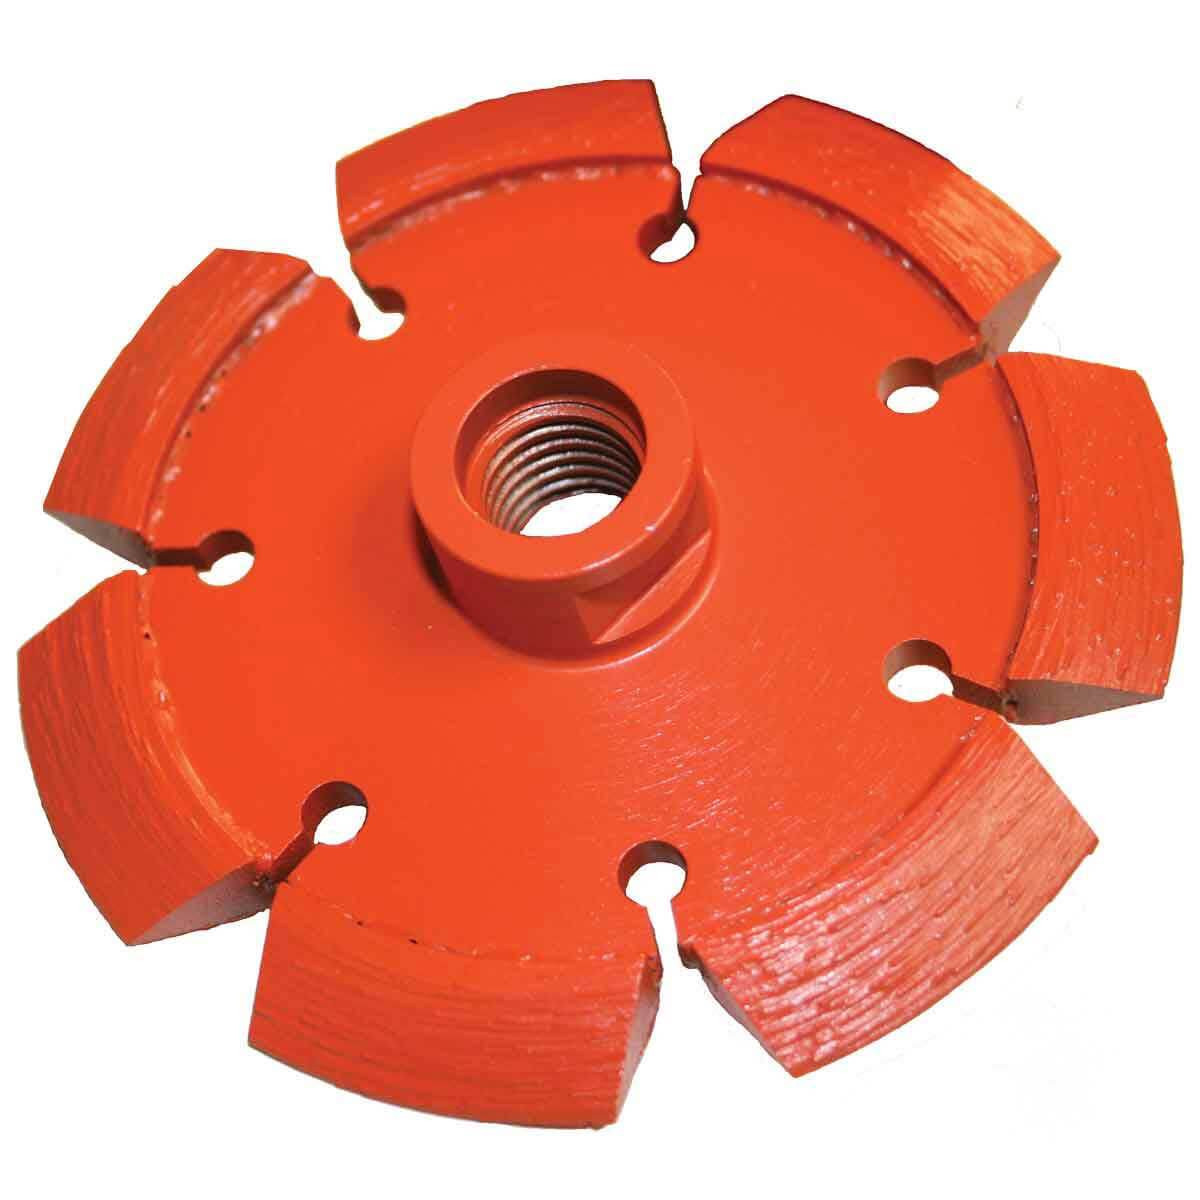 Diamond Products Core Cut Heavy Duty Orange V-Crack Blades